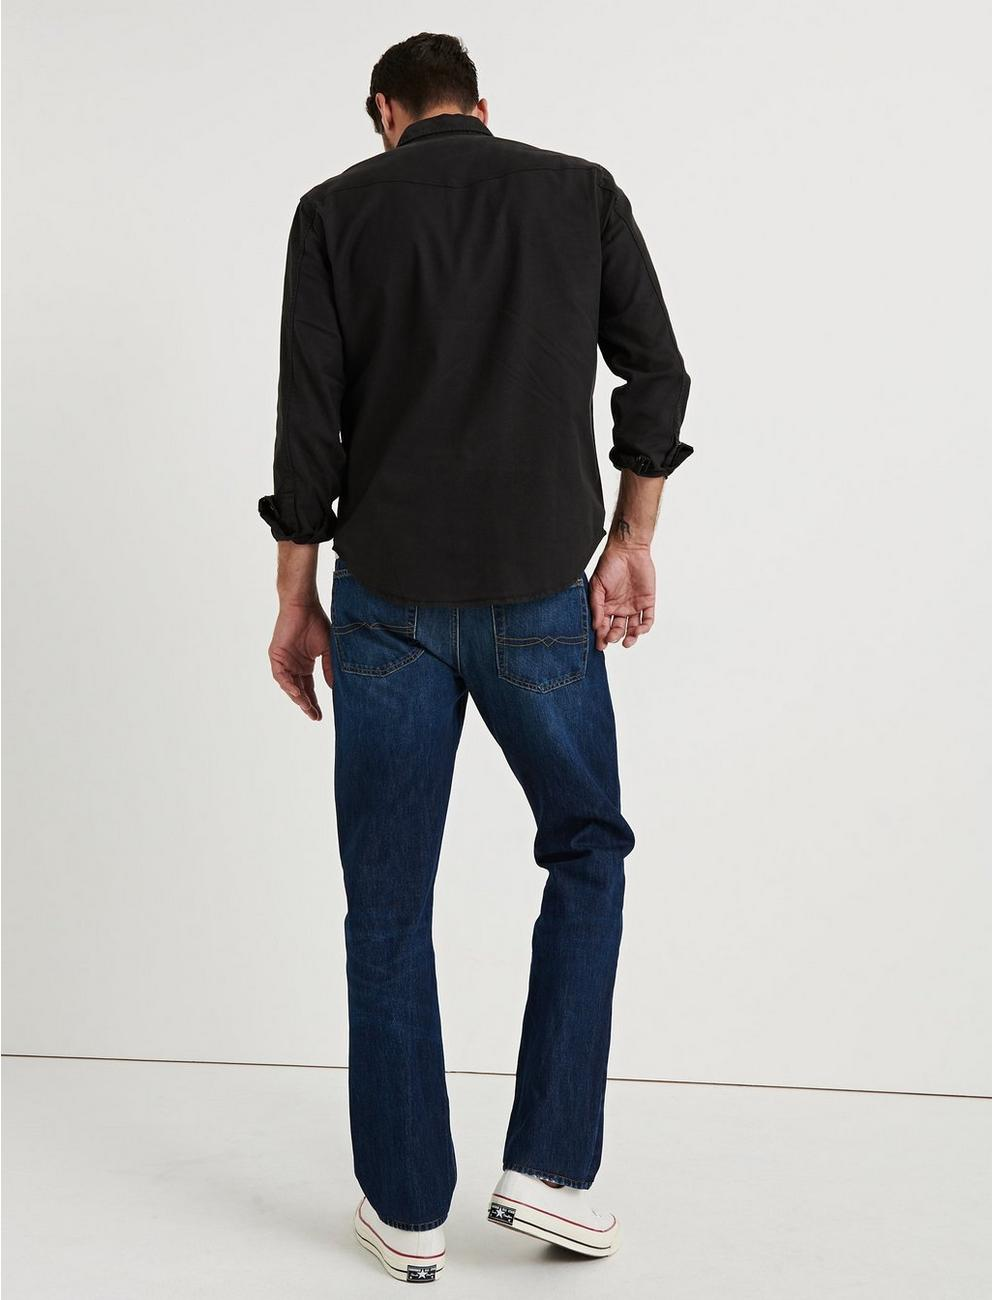 363 VINTAGE STRAIGHT VERTICAL STRETCH JEAN, WALDON WOODS